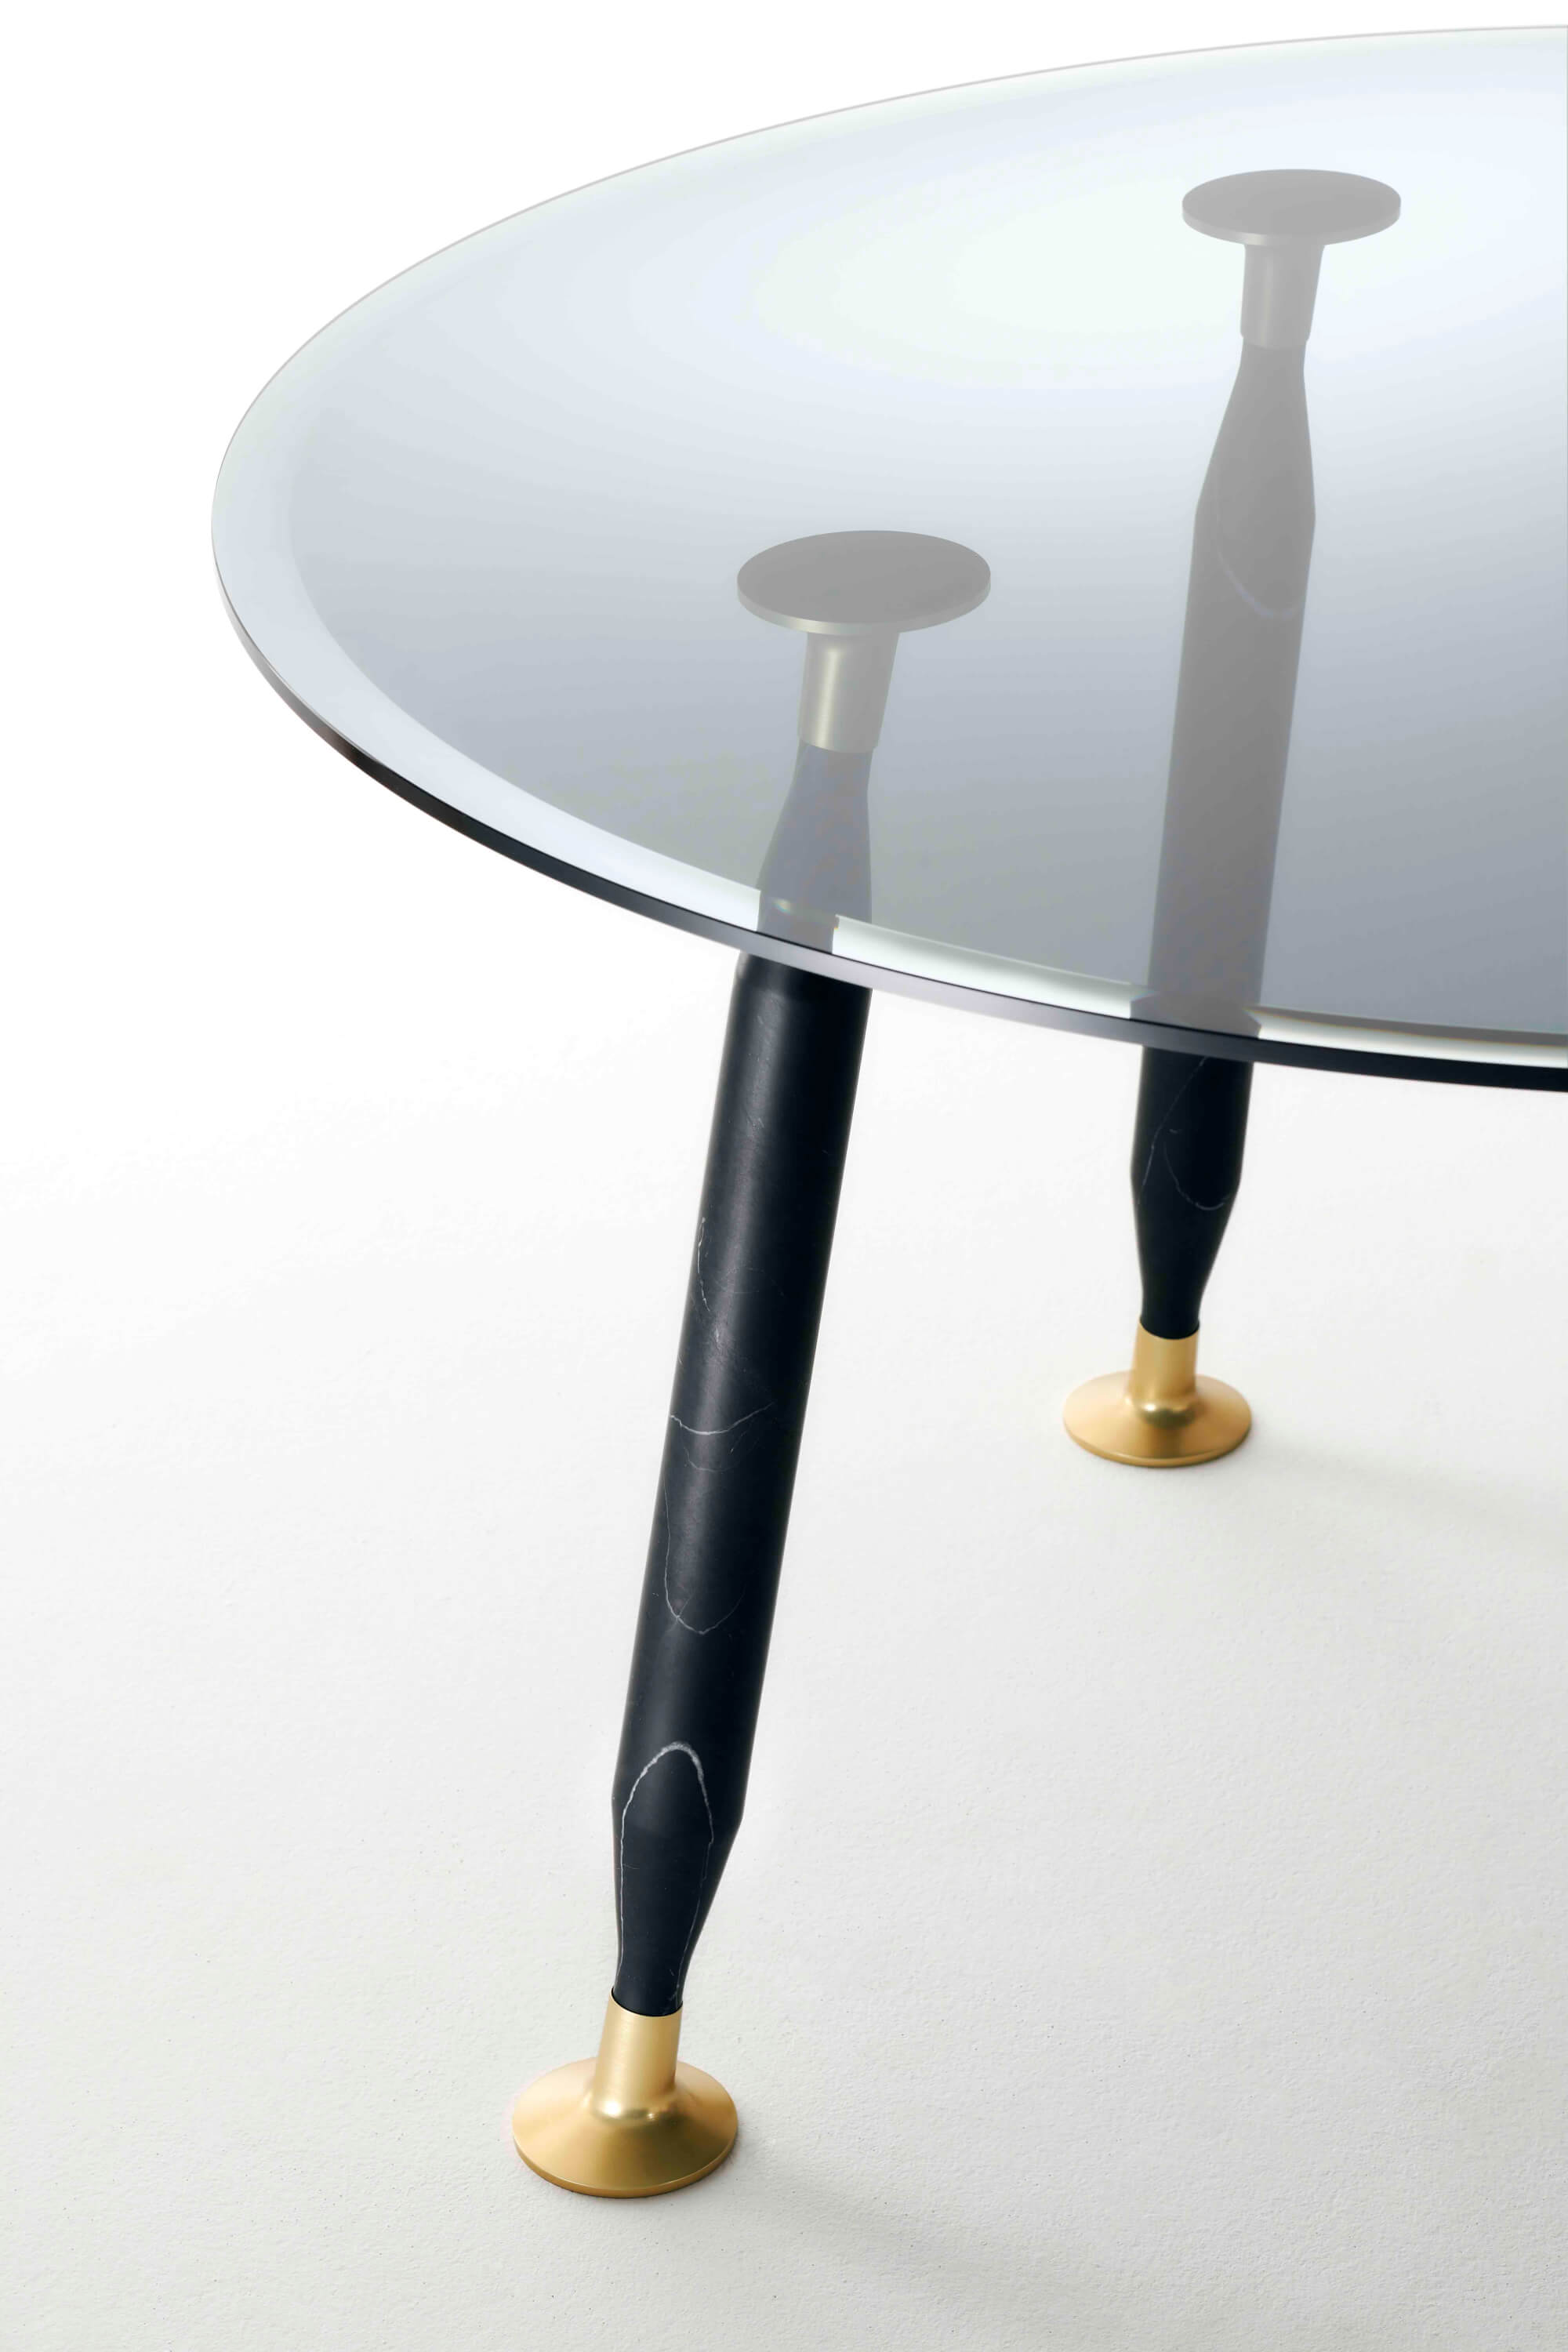 LADY HIO by Starck with S. Schito (GLAS ITALIA)